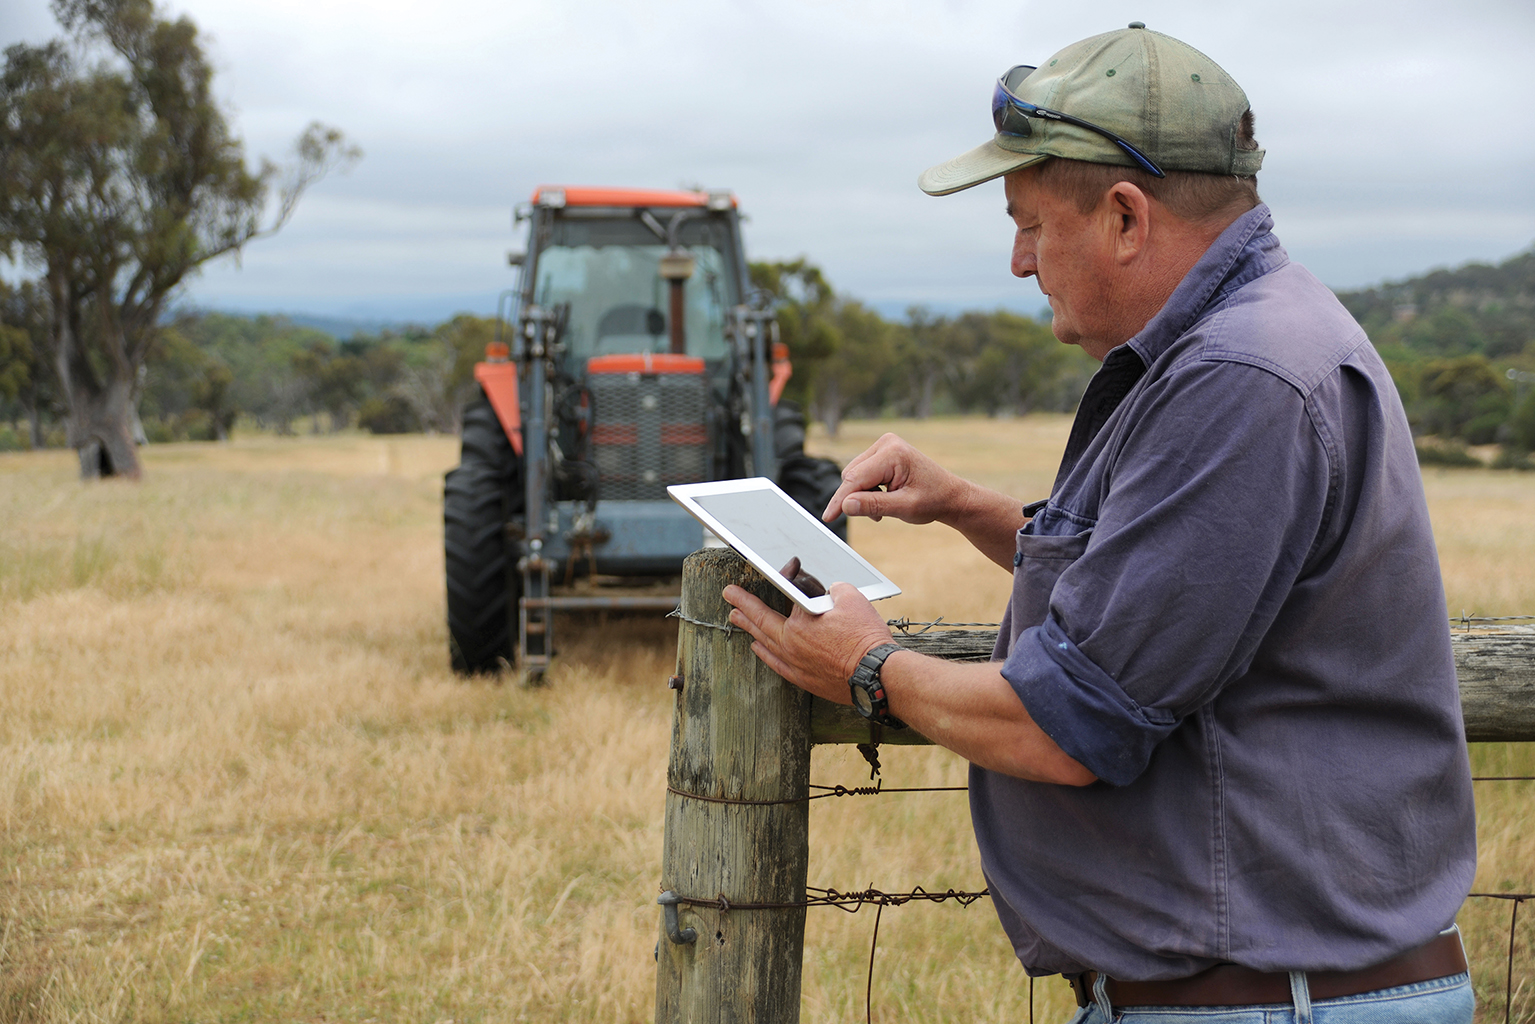 Farmer standing against a farm fene post using an iPad, with a tractor in the background.